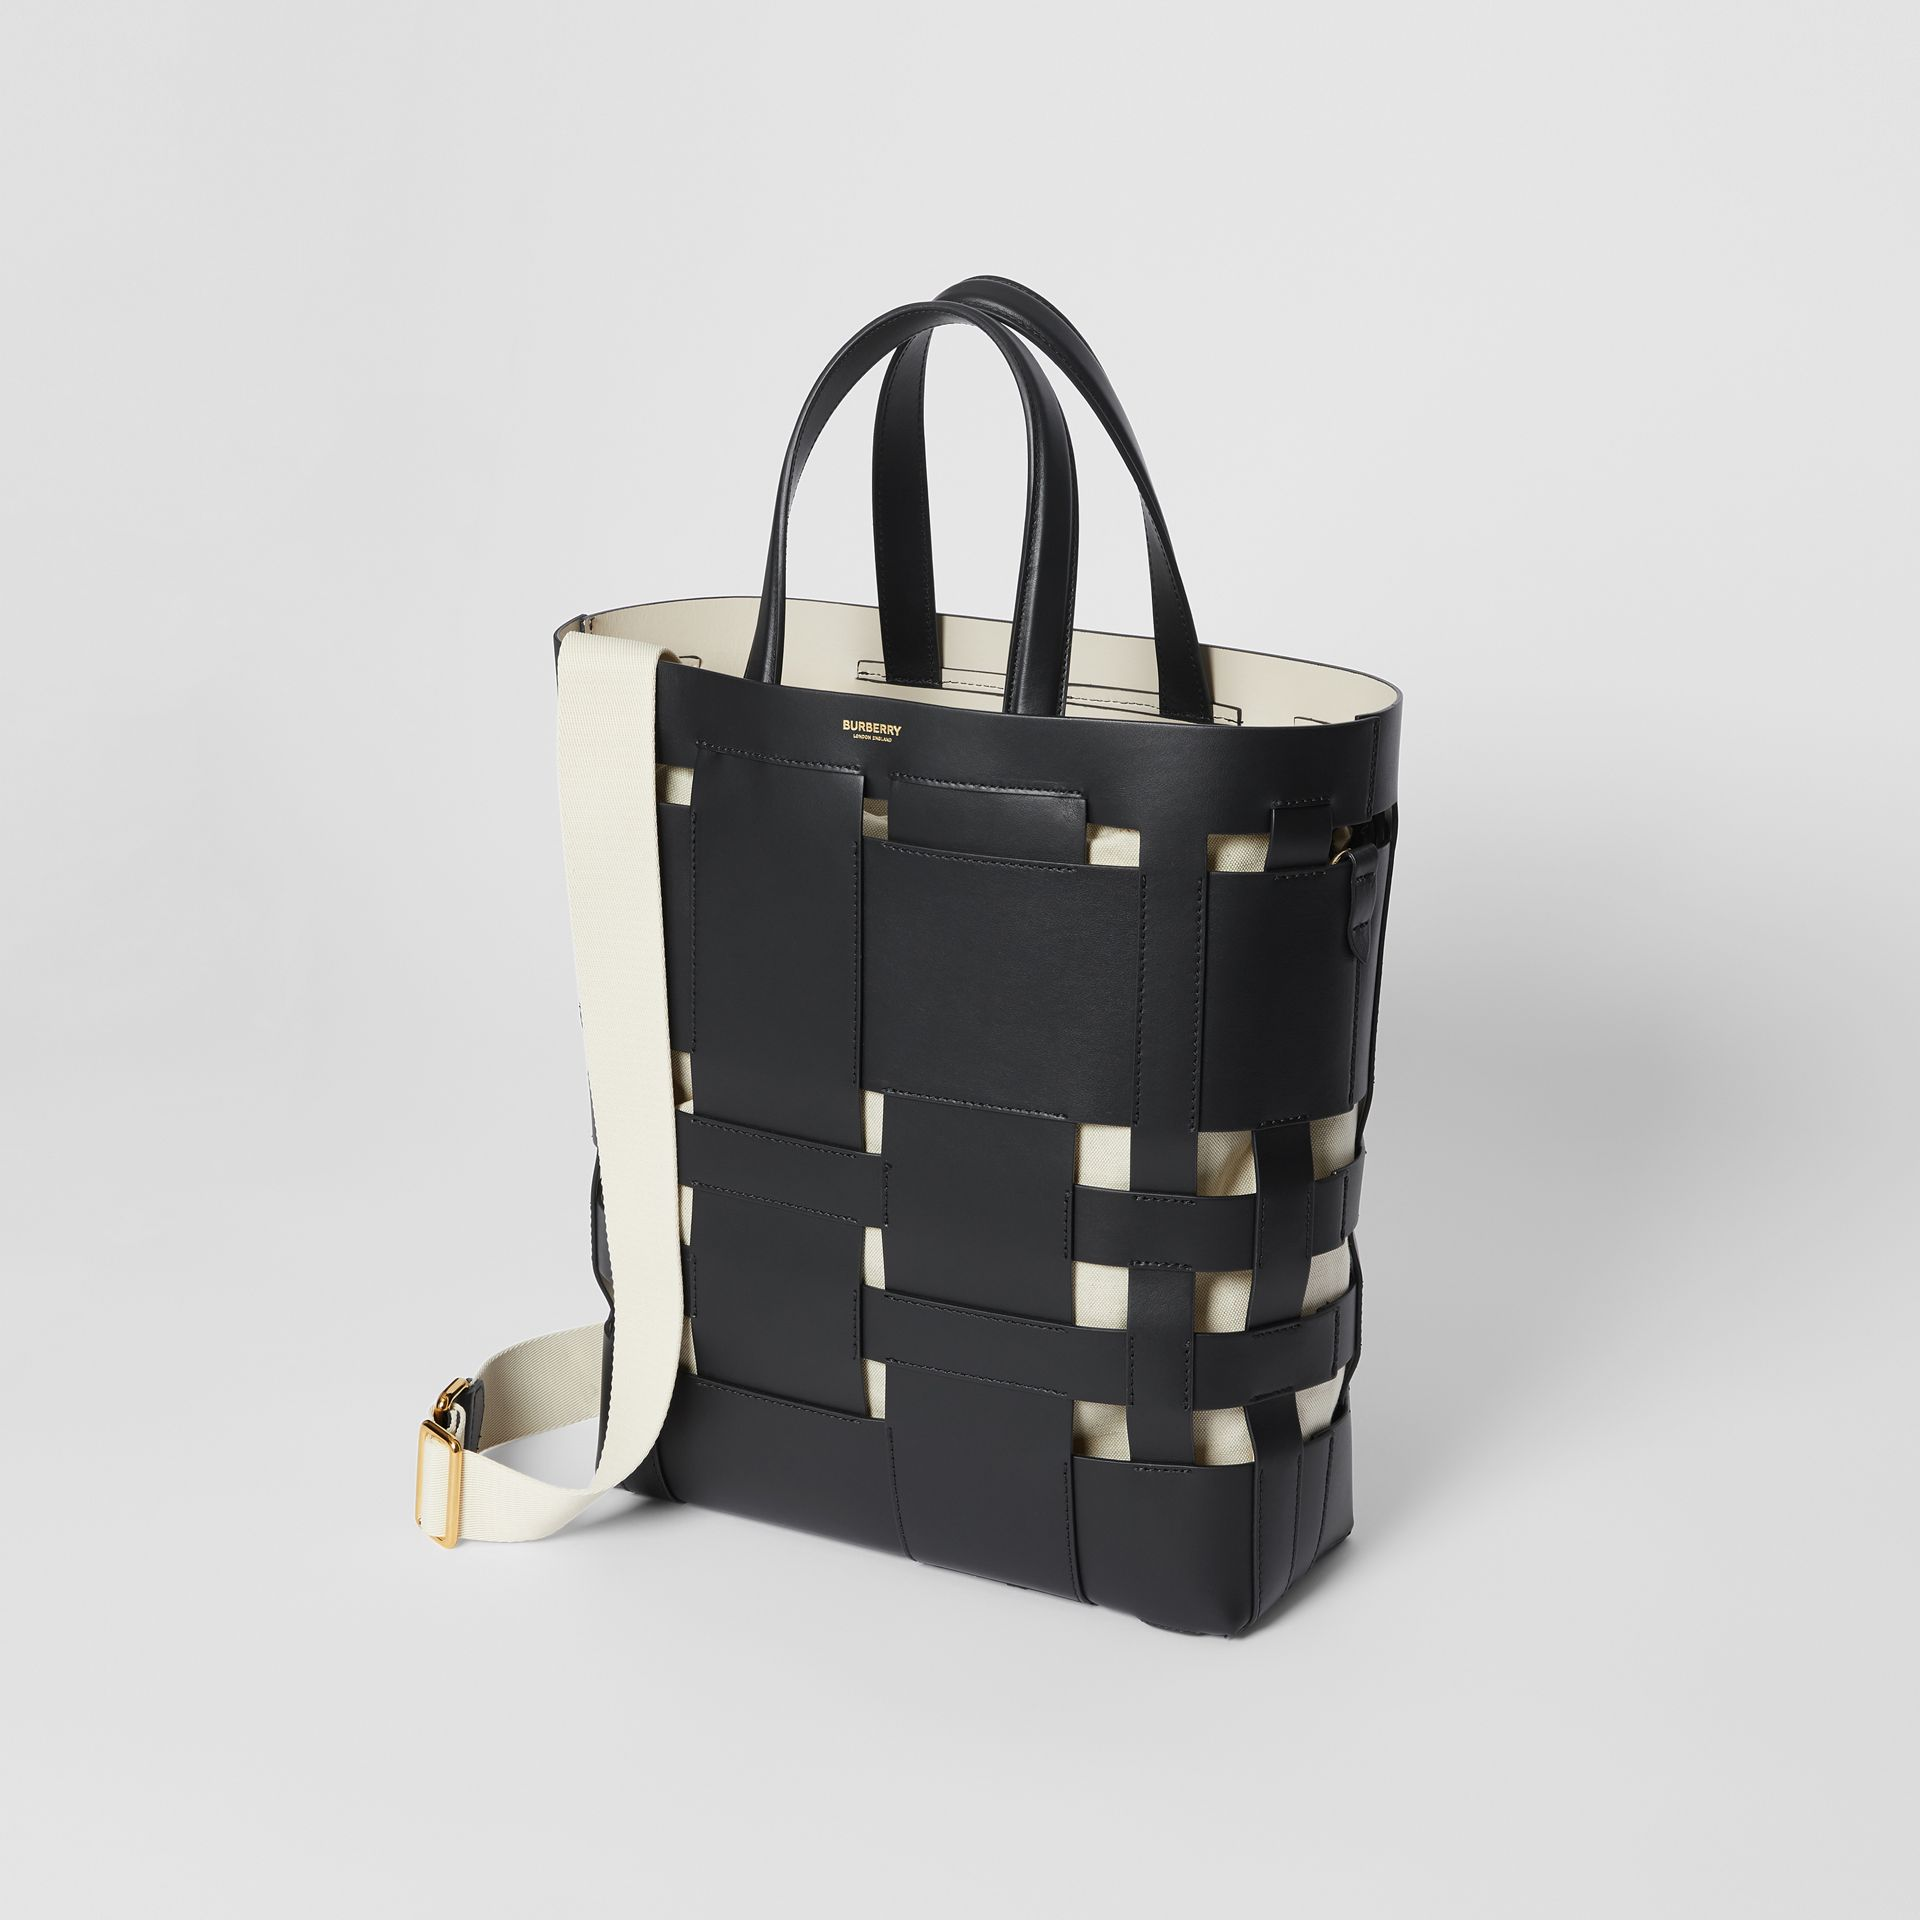 Medium Leather Foster Tote in Black - Women | Burberry - gallery image 3